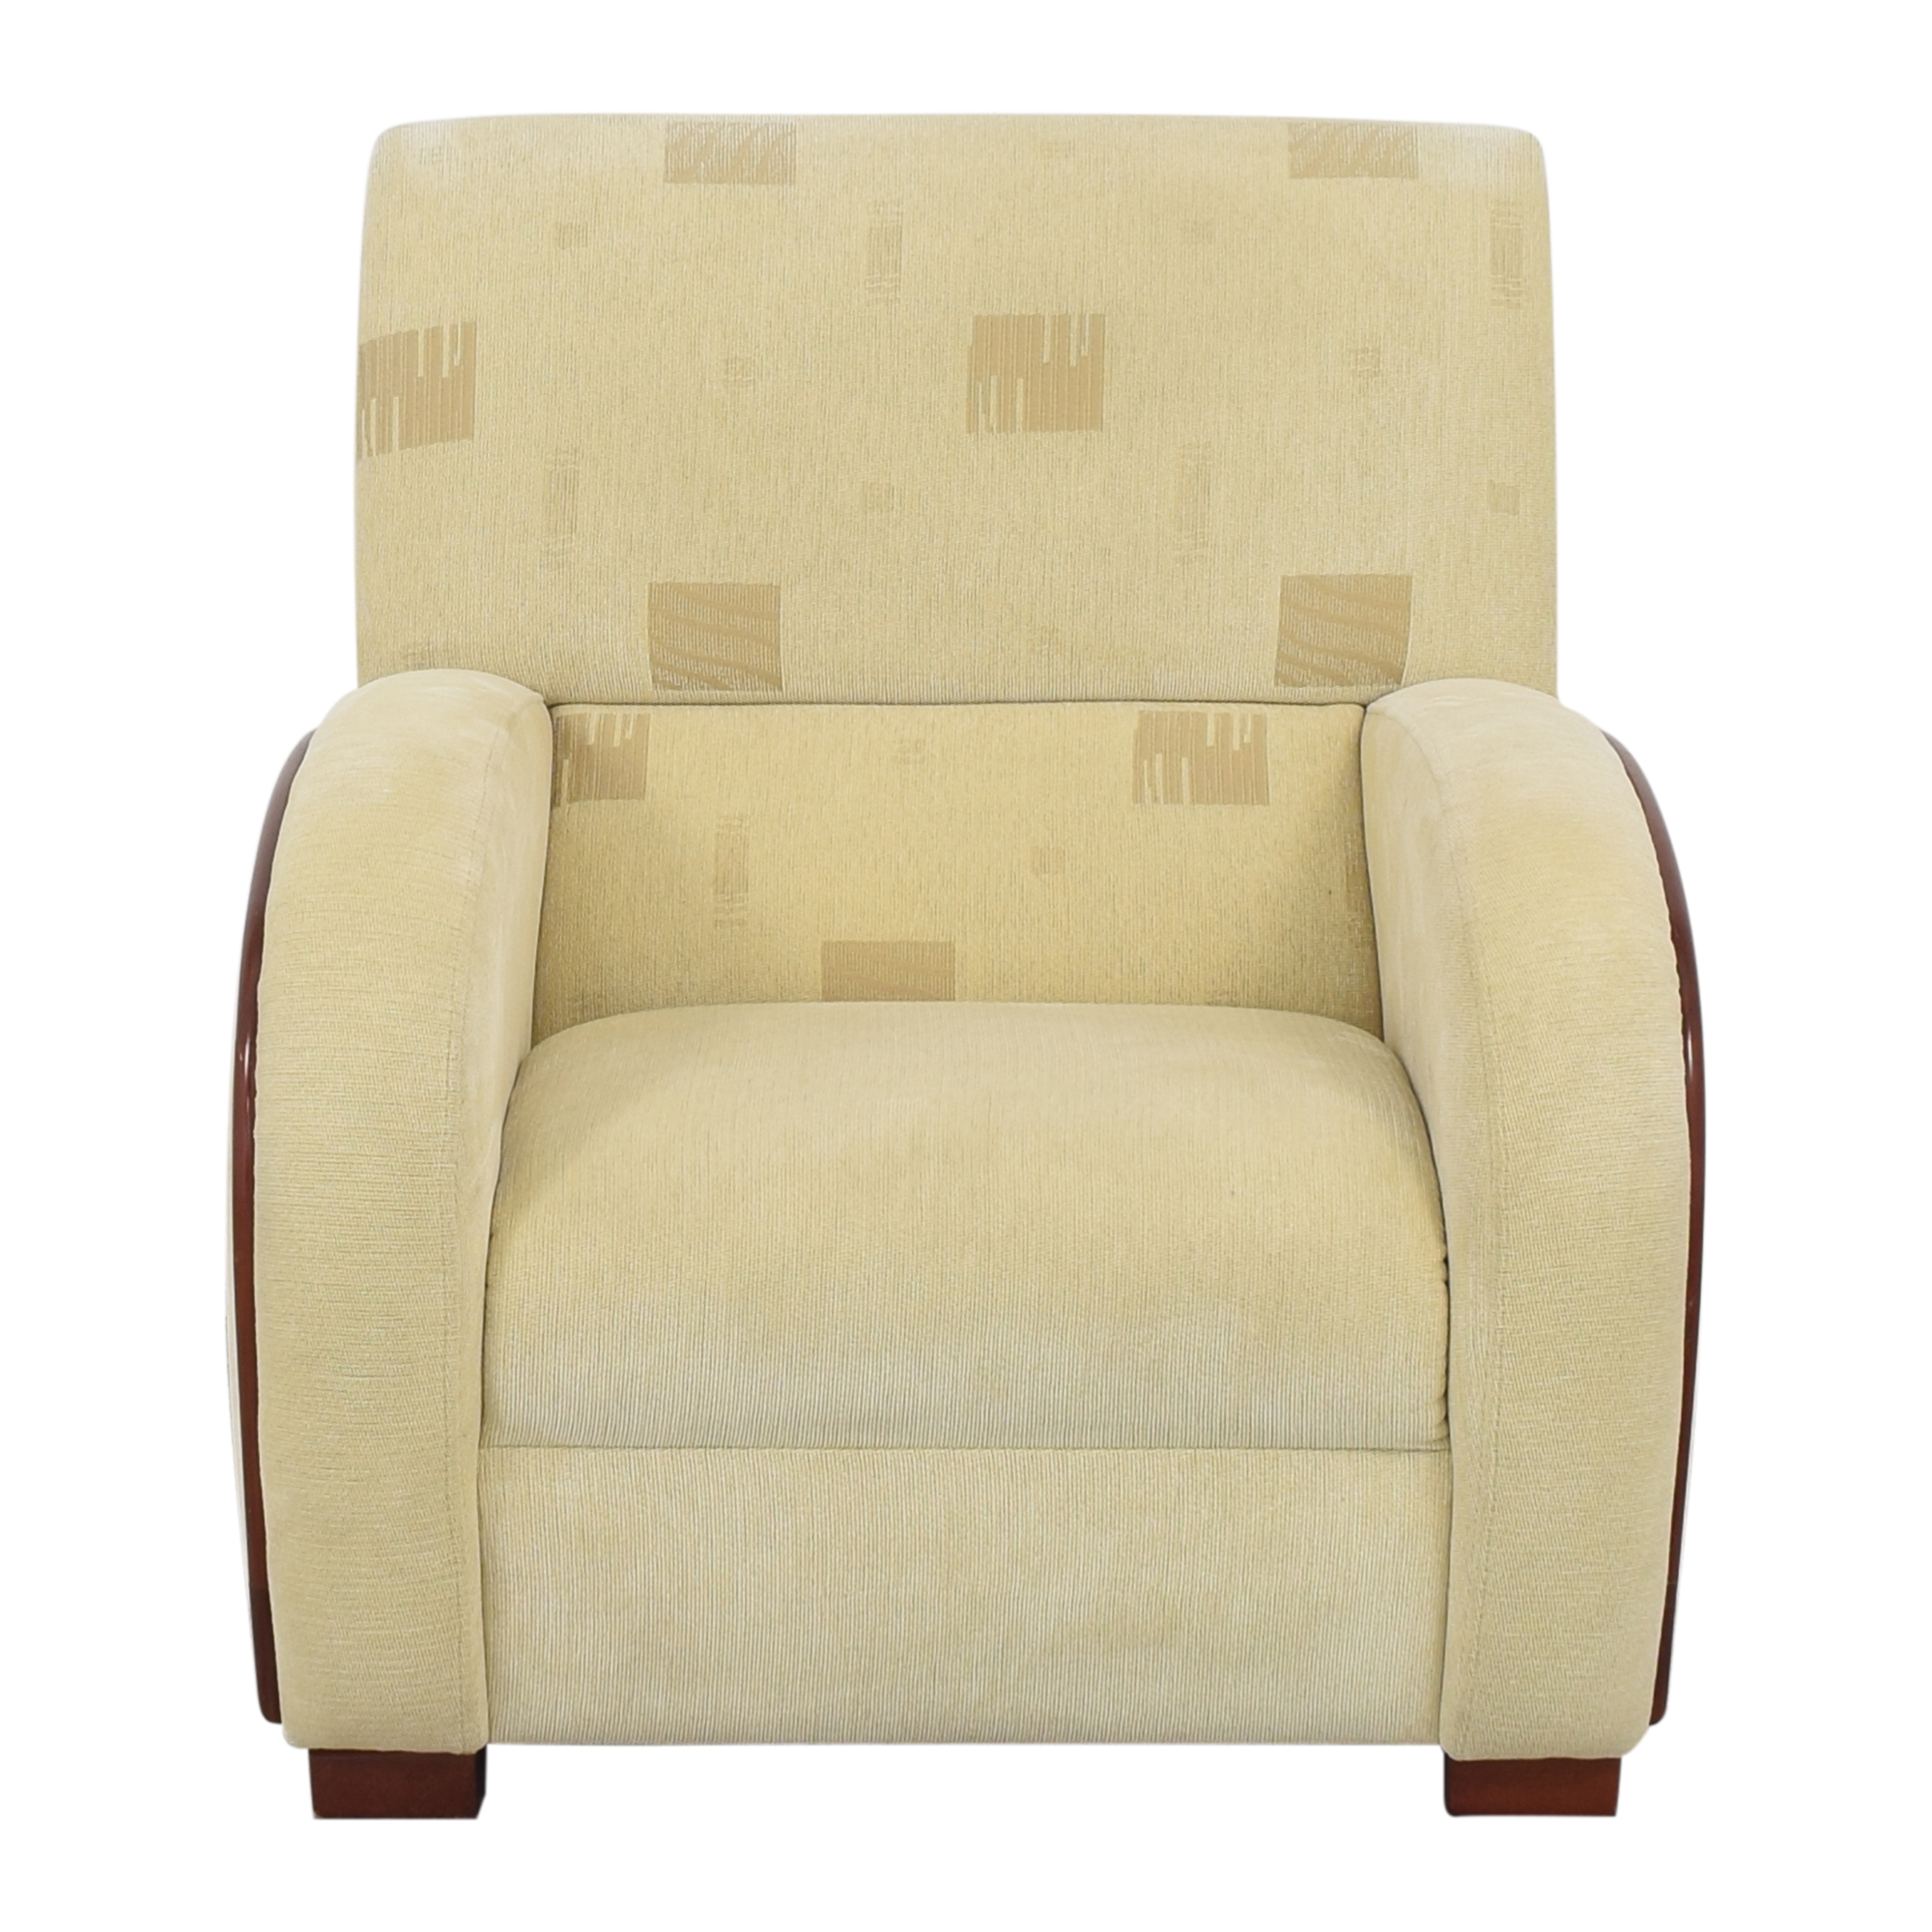 Vintage Style Accent Chair / Chairs